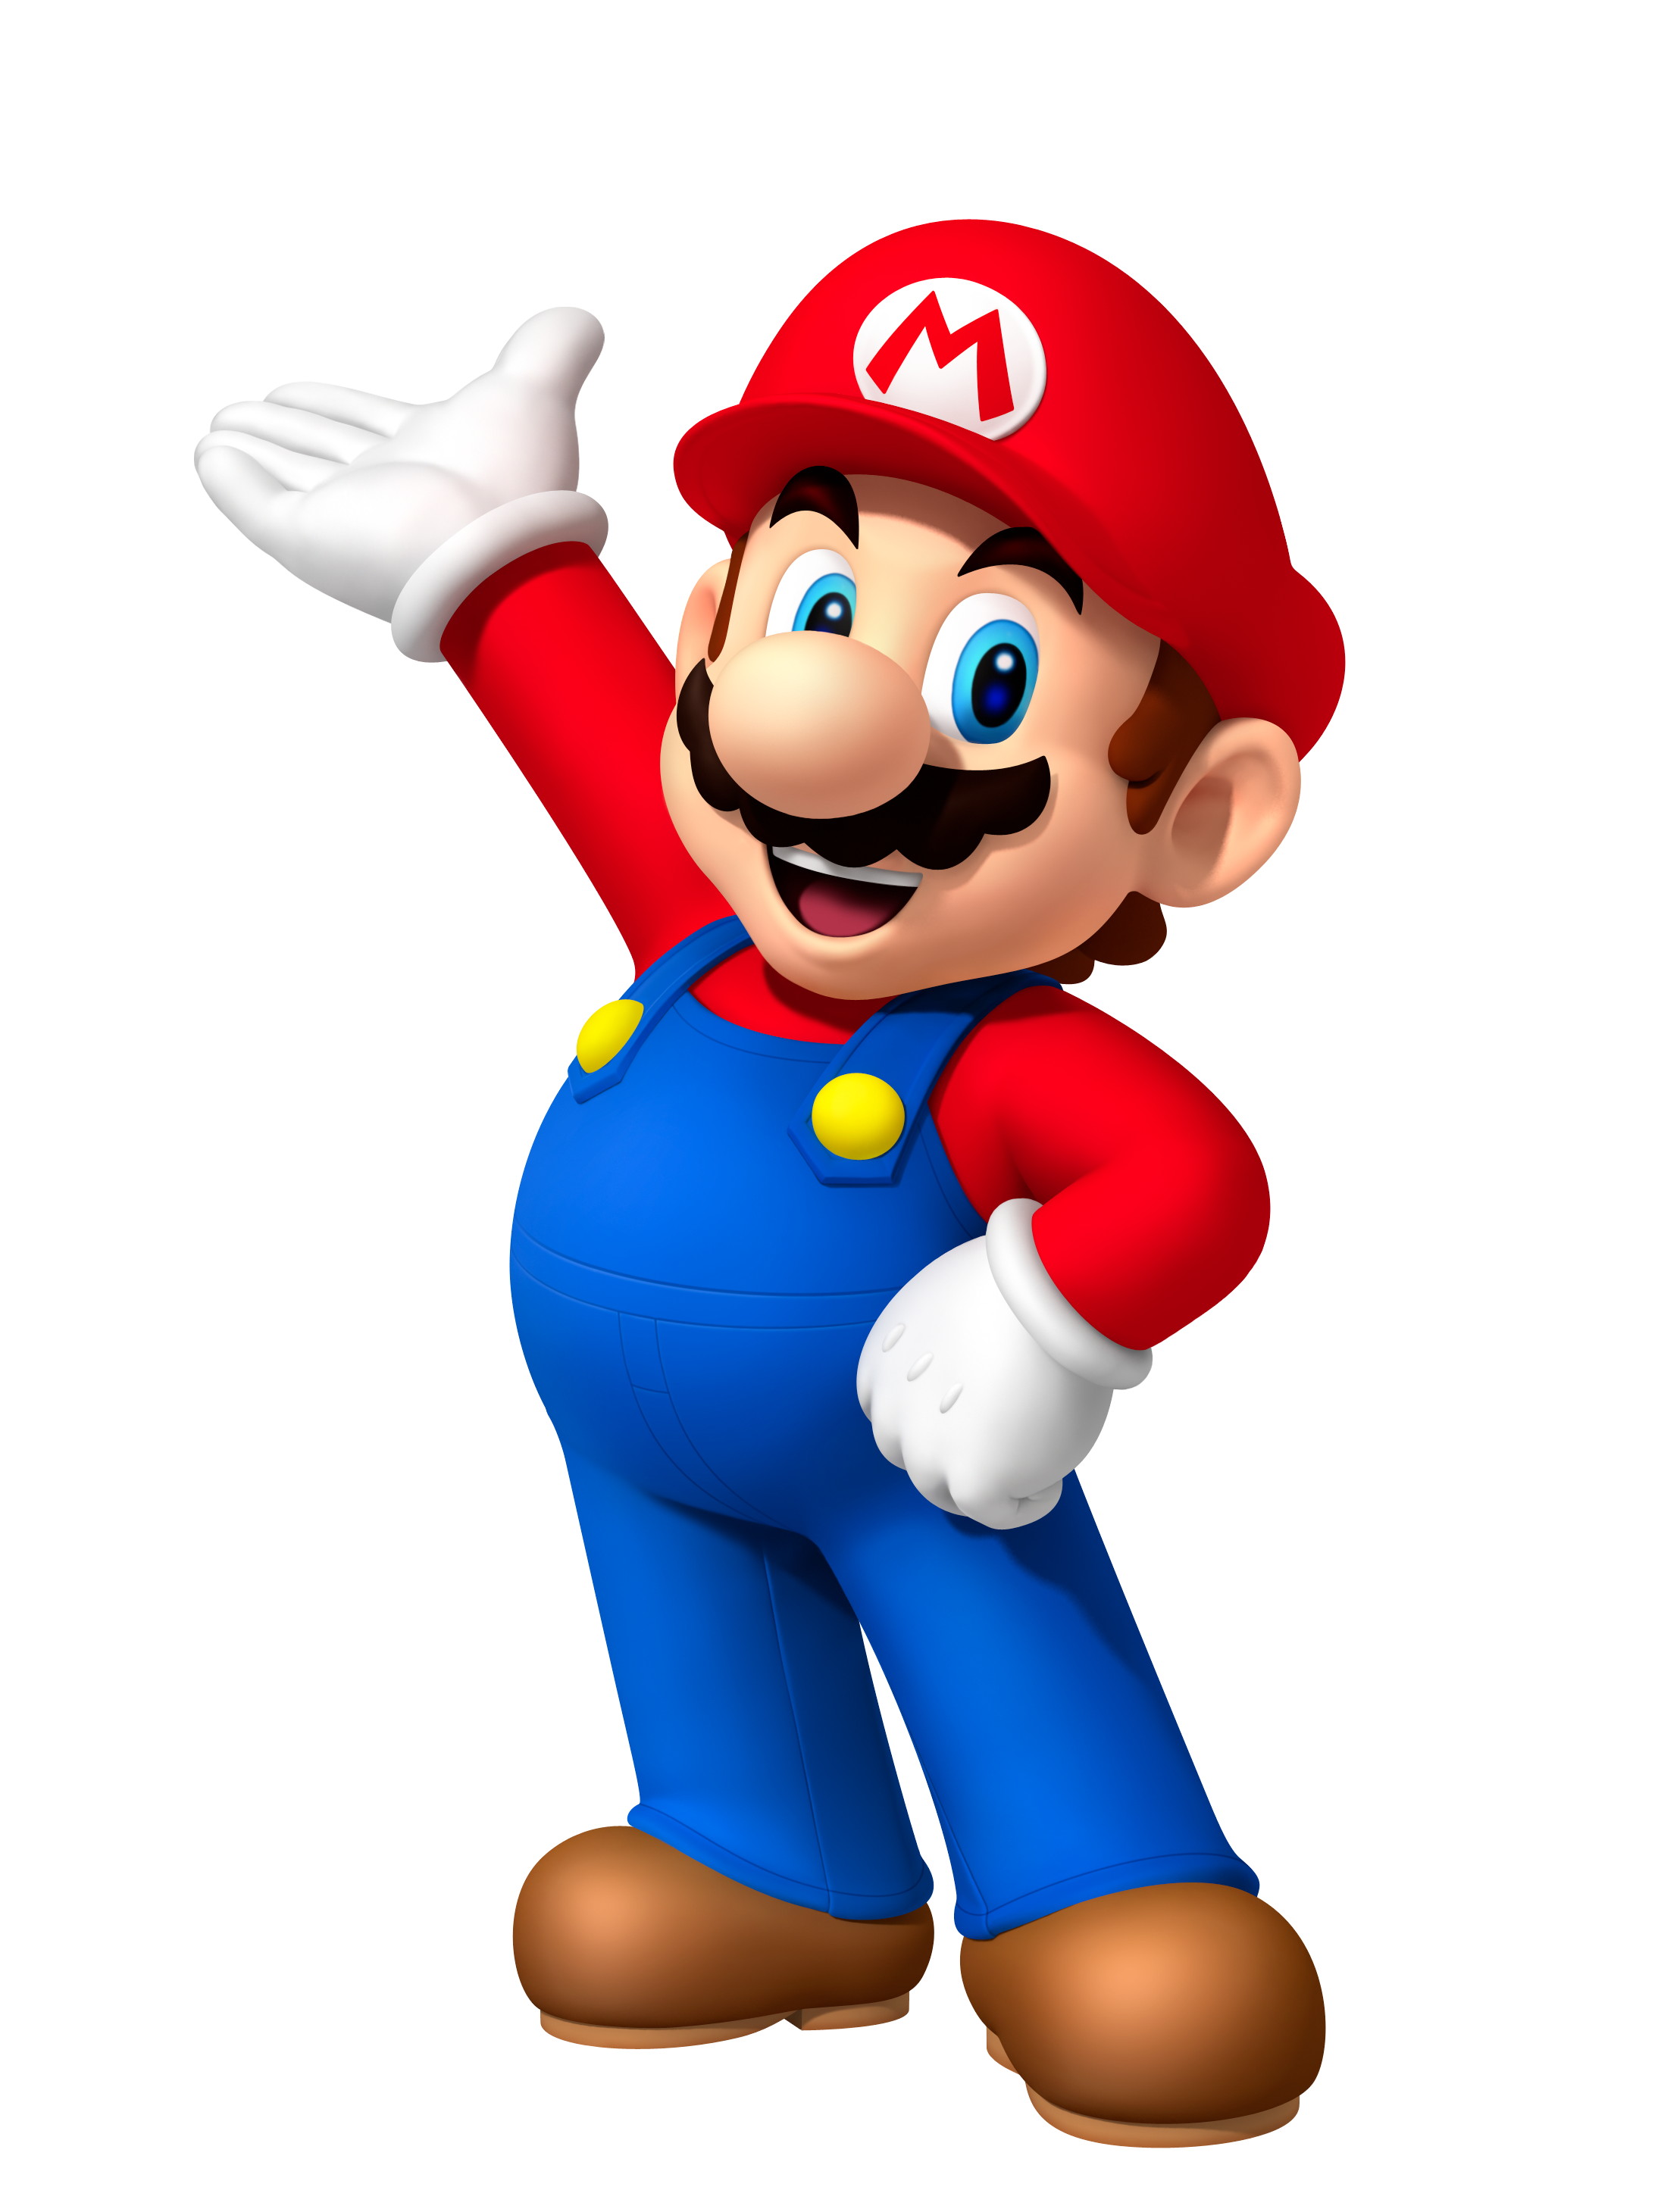 Super mario character clipart banner library Mario Characters Clipart - ClipArt Best banner library